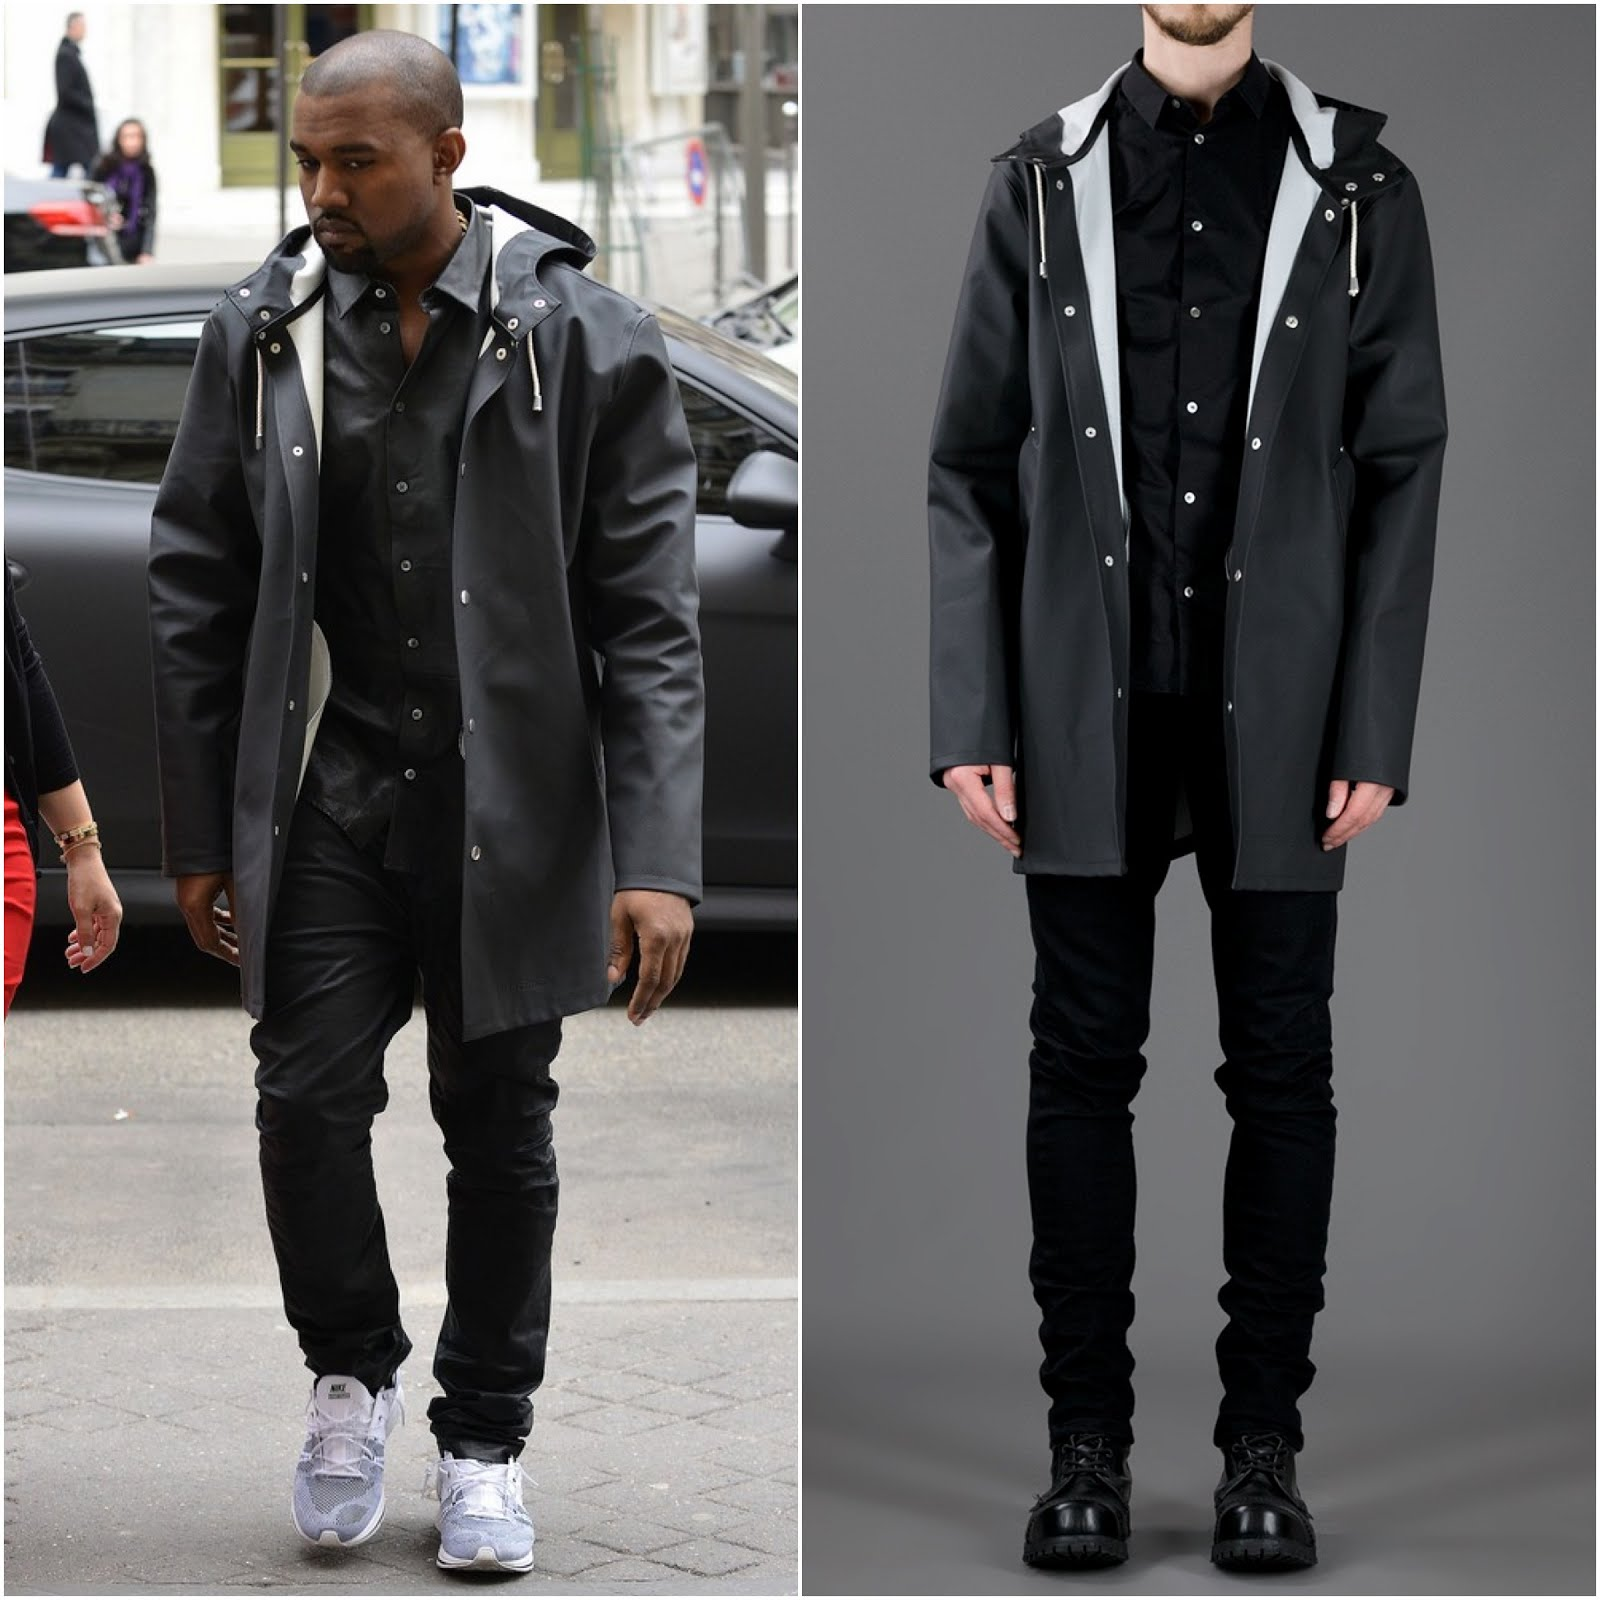 00O00 Menswear Blog: Kanye West in Stutterheim raincoat parka with Kim Kardashian - Paris Street Style April 2013